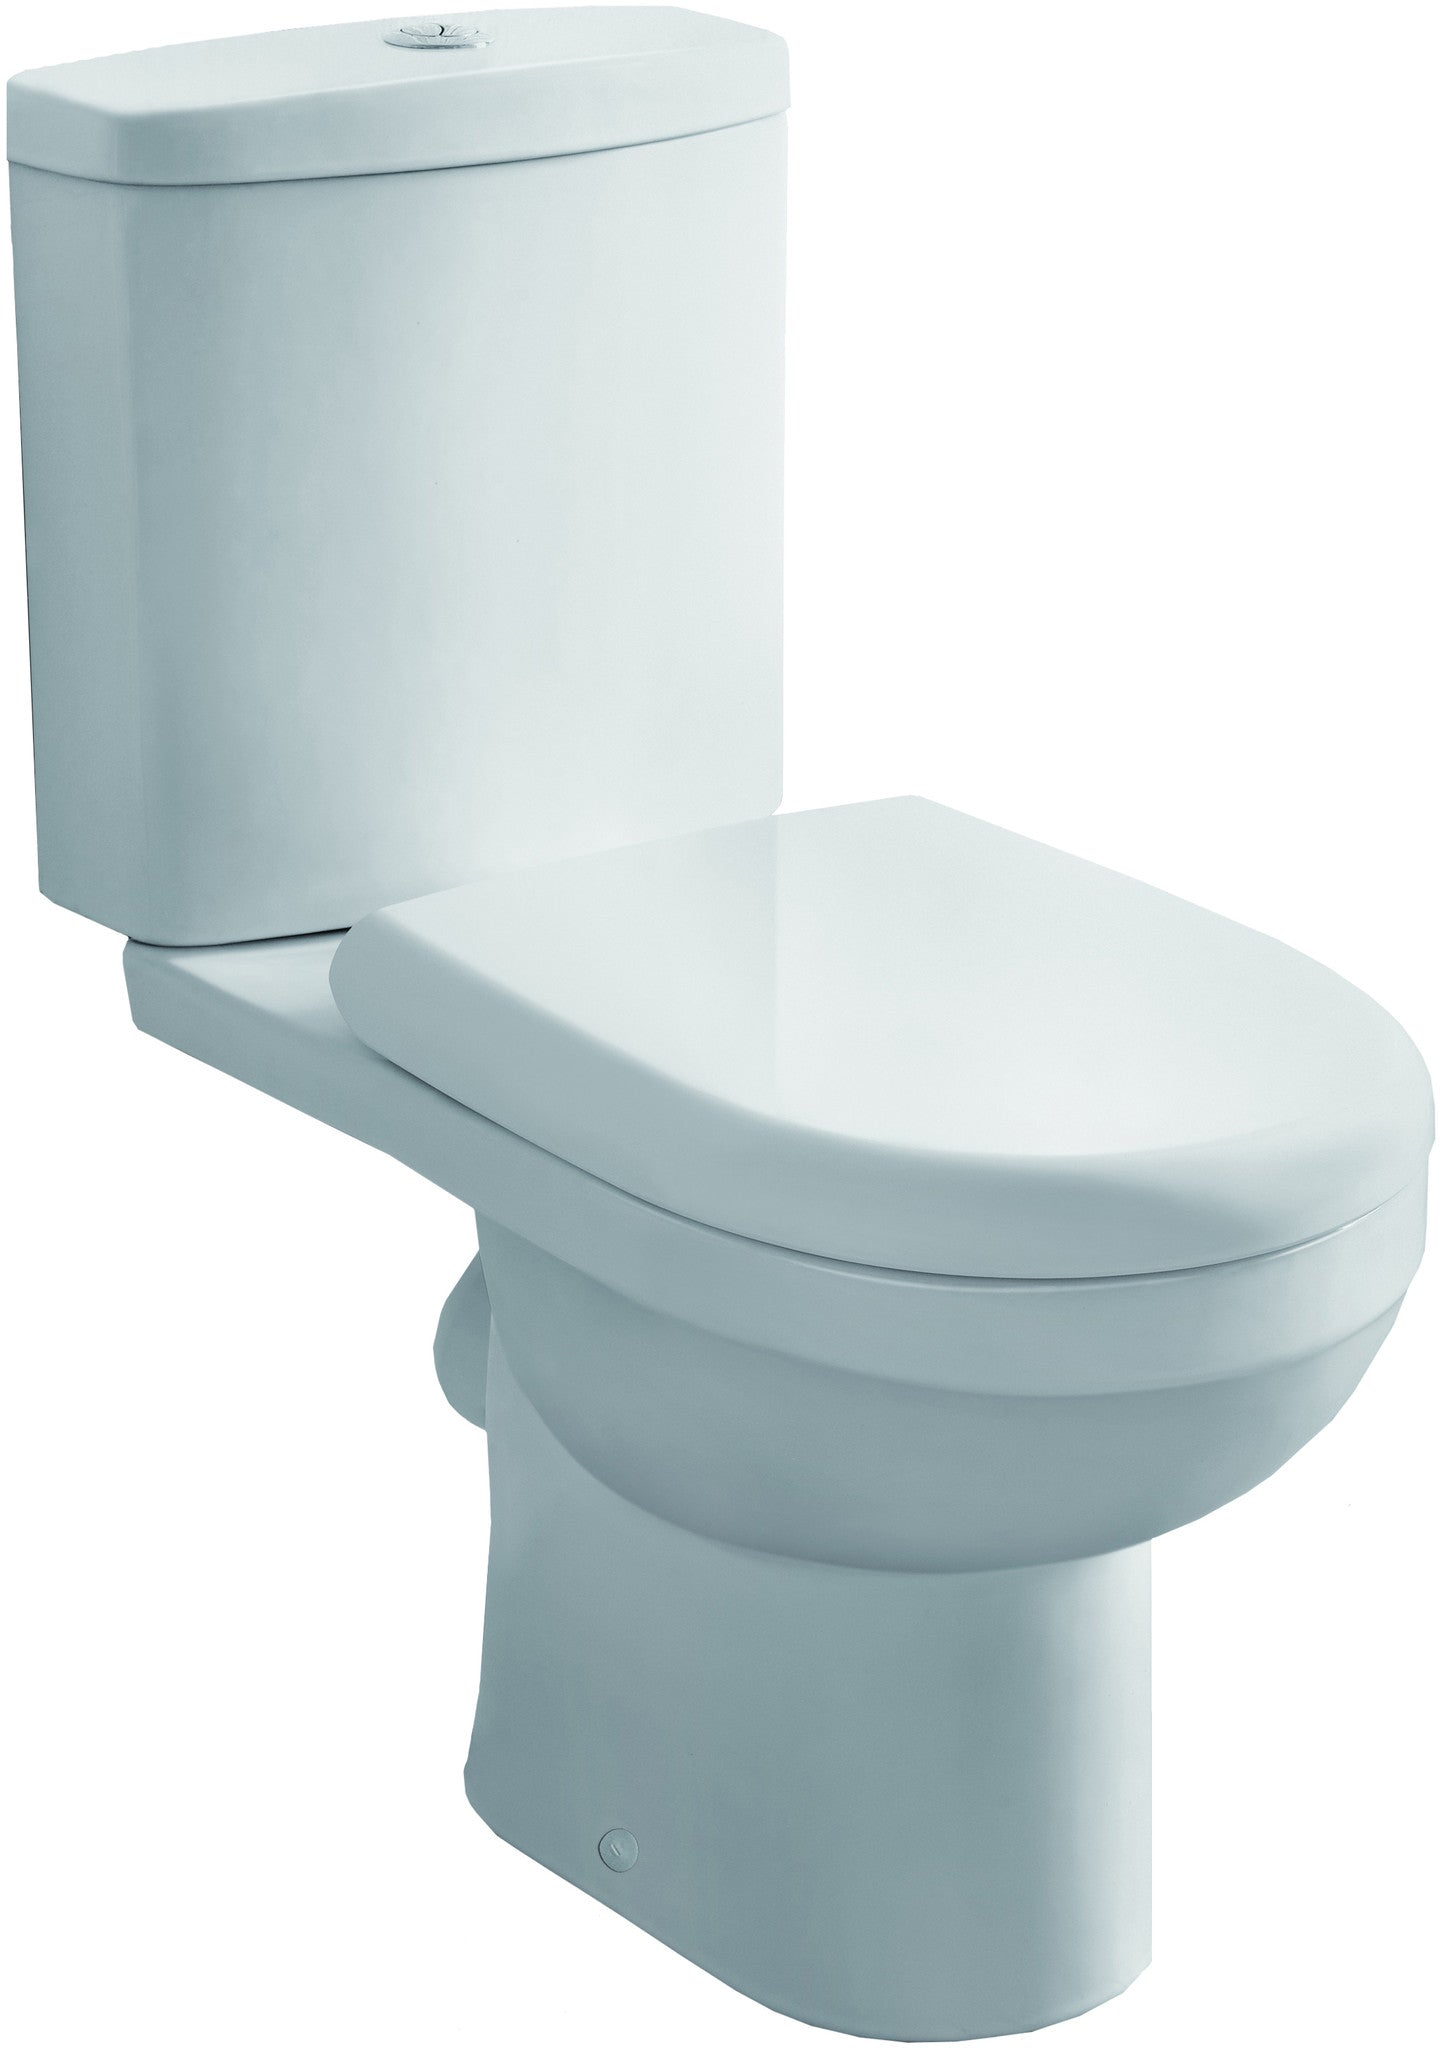 Peart Close Coupled Pan, Cistern & Soft Close Seat – twilight bathrooms